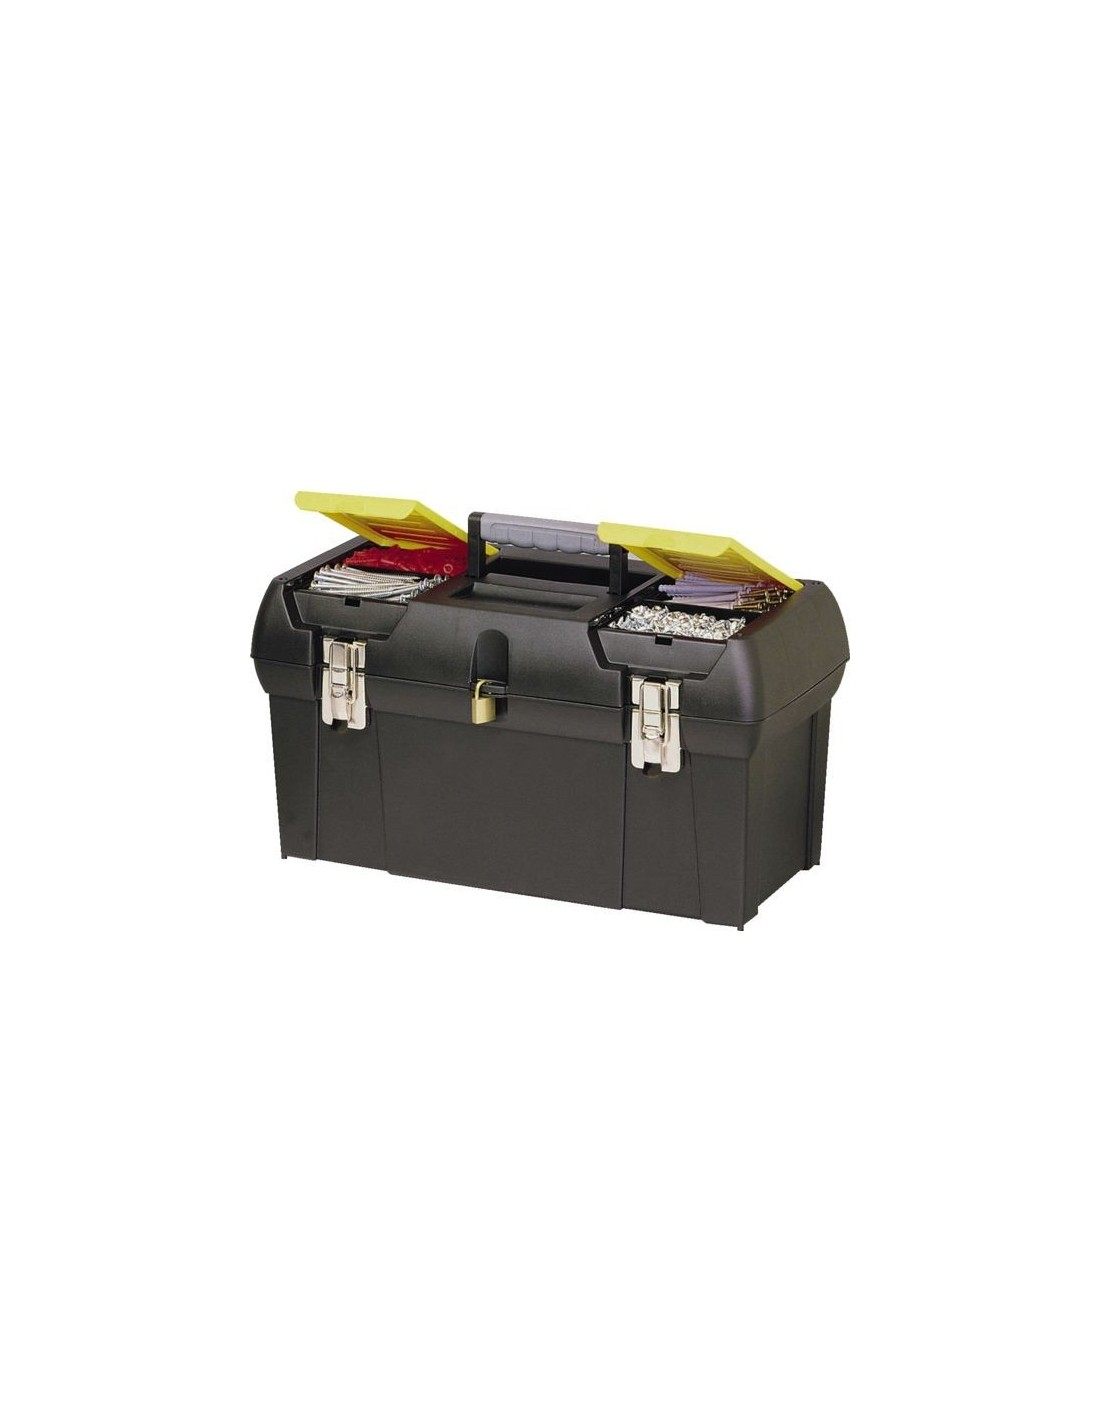 Boite outils batipro stanley grande capacit for Cuisine boite a outils